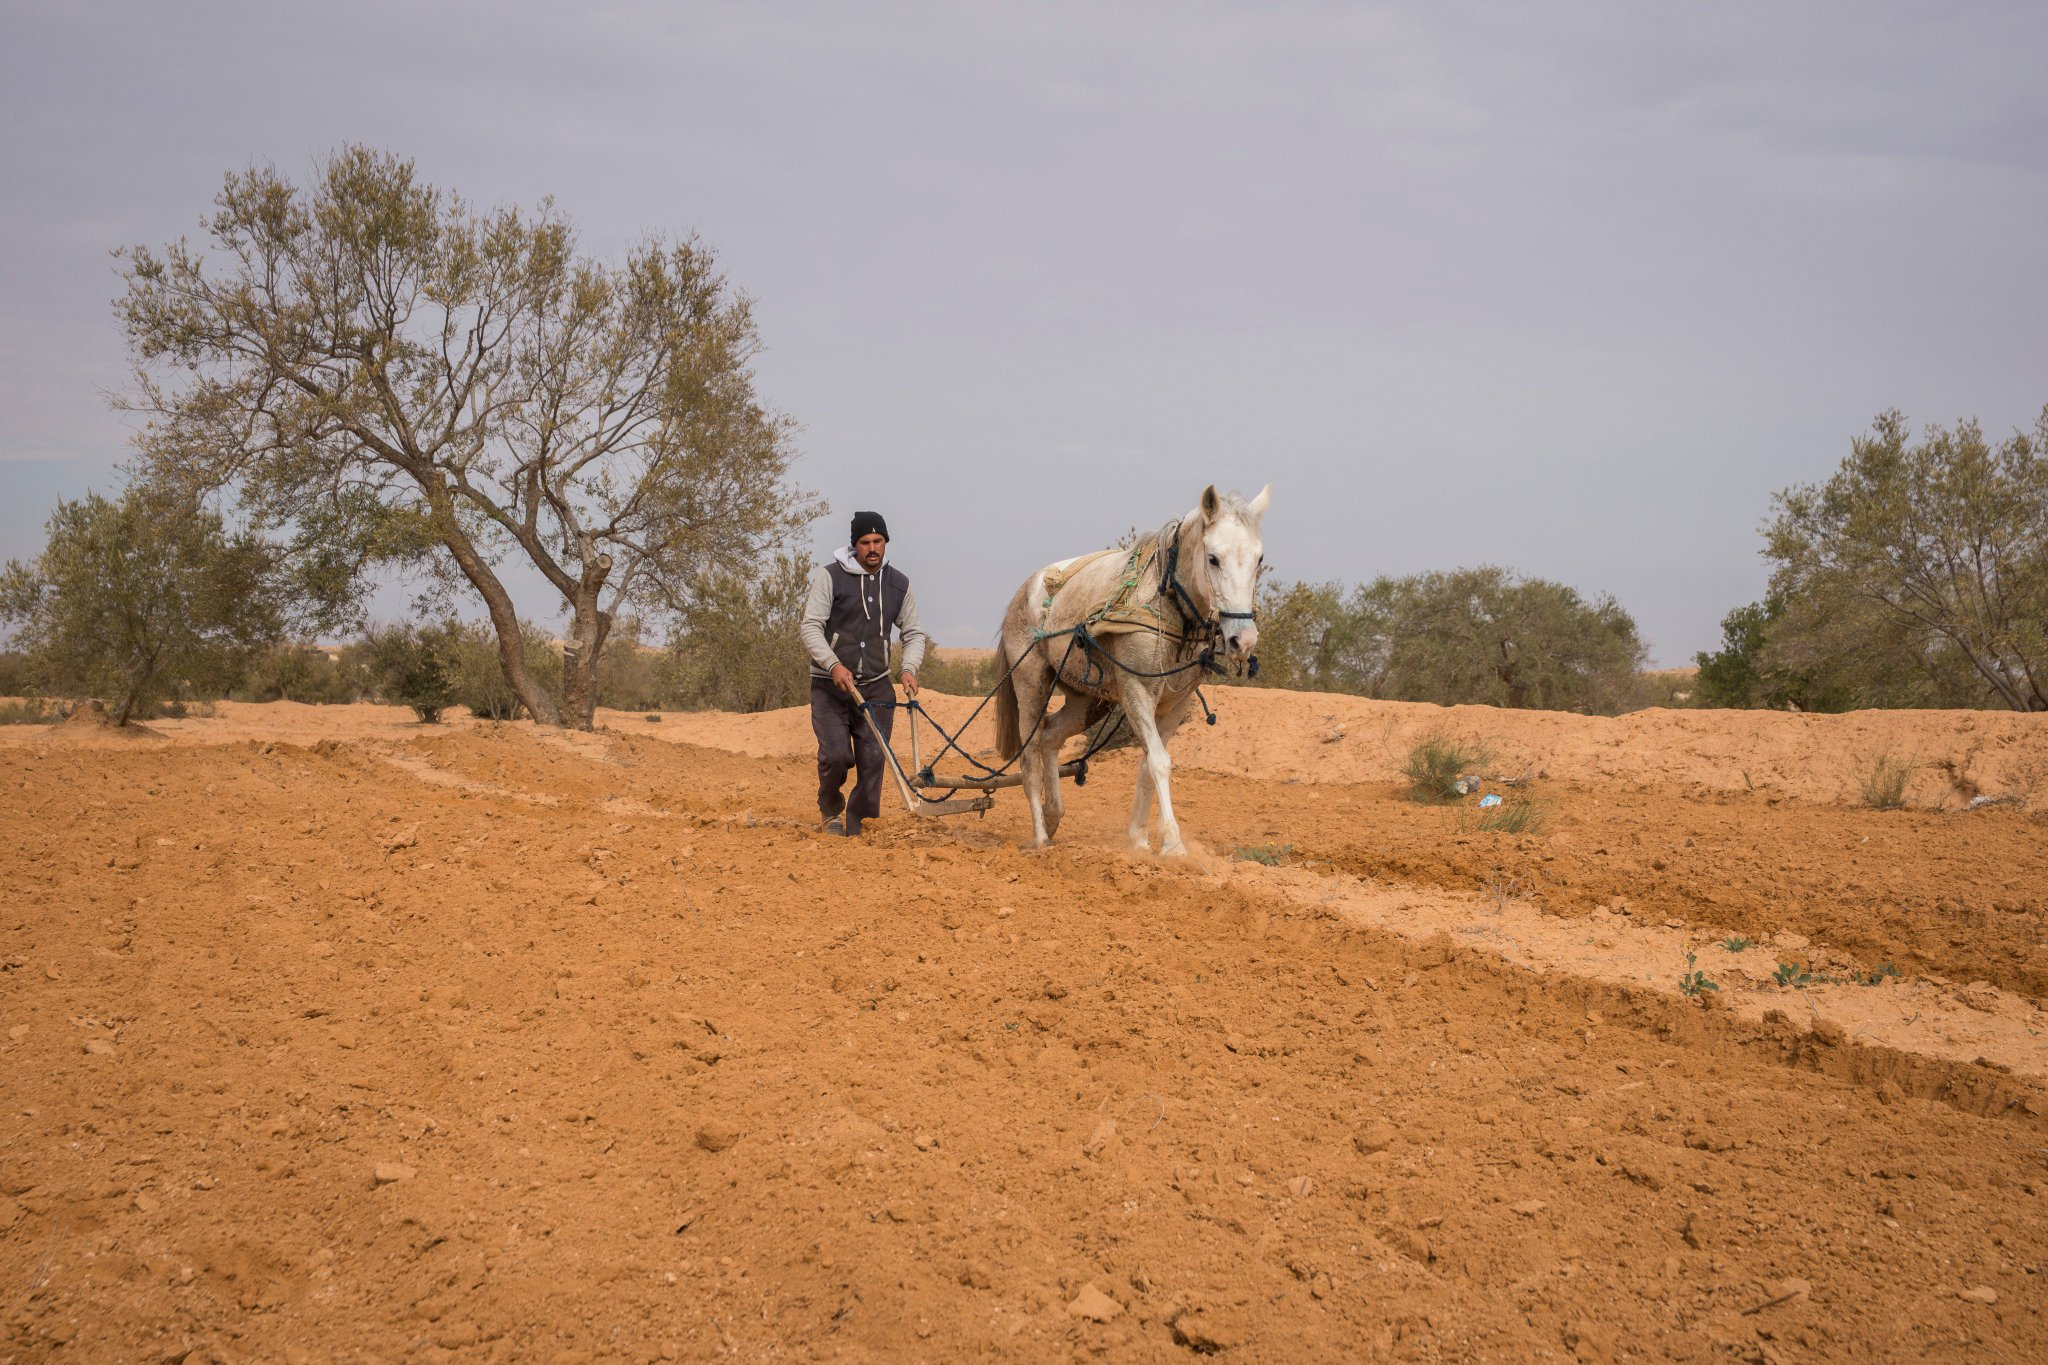 Are we there yet with #science & #technology for #climatechange #adaptation in #MENA? #drylands #COP22: https://t.co/OYx7p8NlyD https://t.co/W4W8lkhTCM